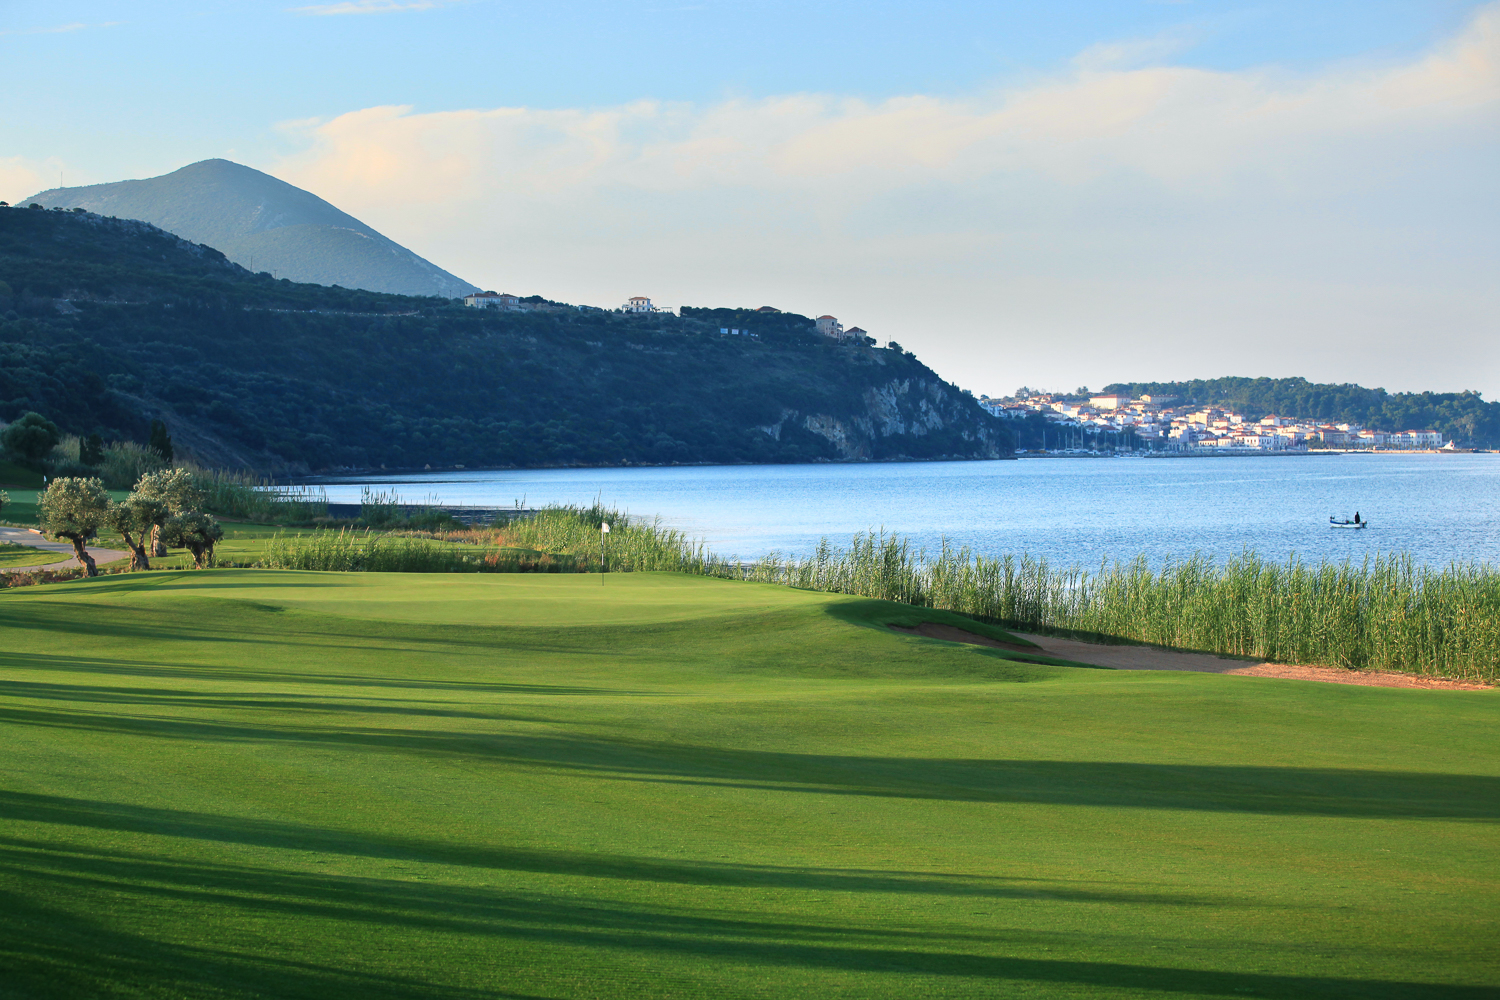 The 4th at the Bay Course is a tempting Par 3 but danger exists for any ball going right.